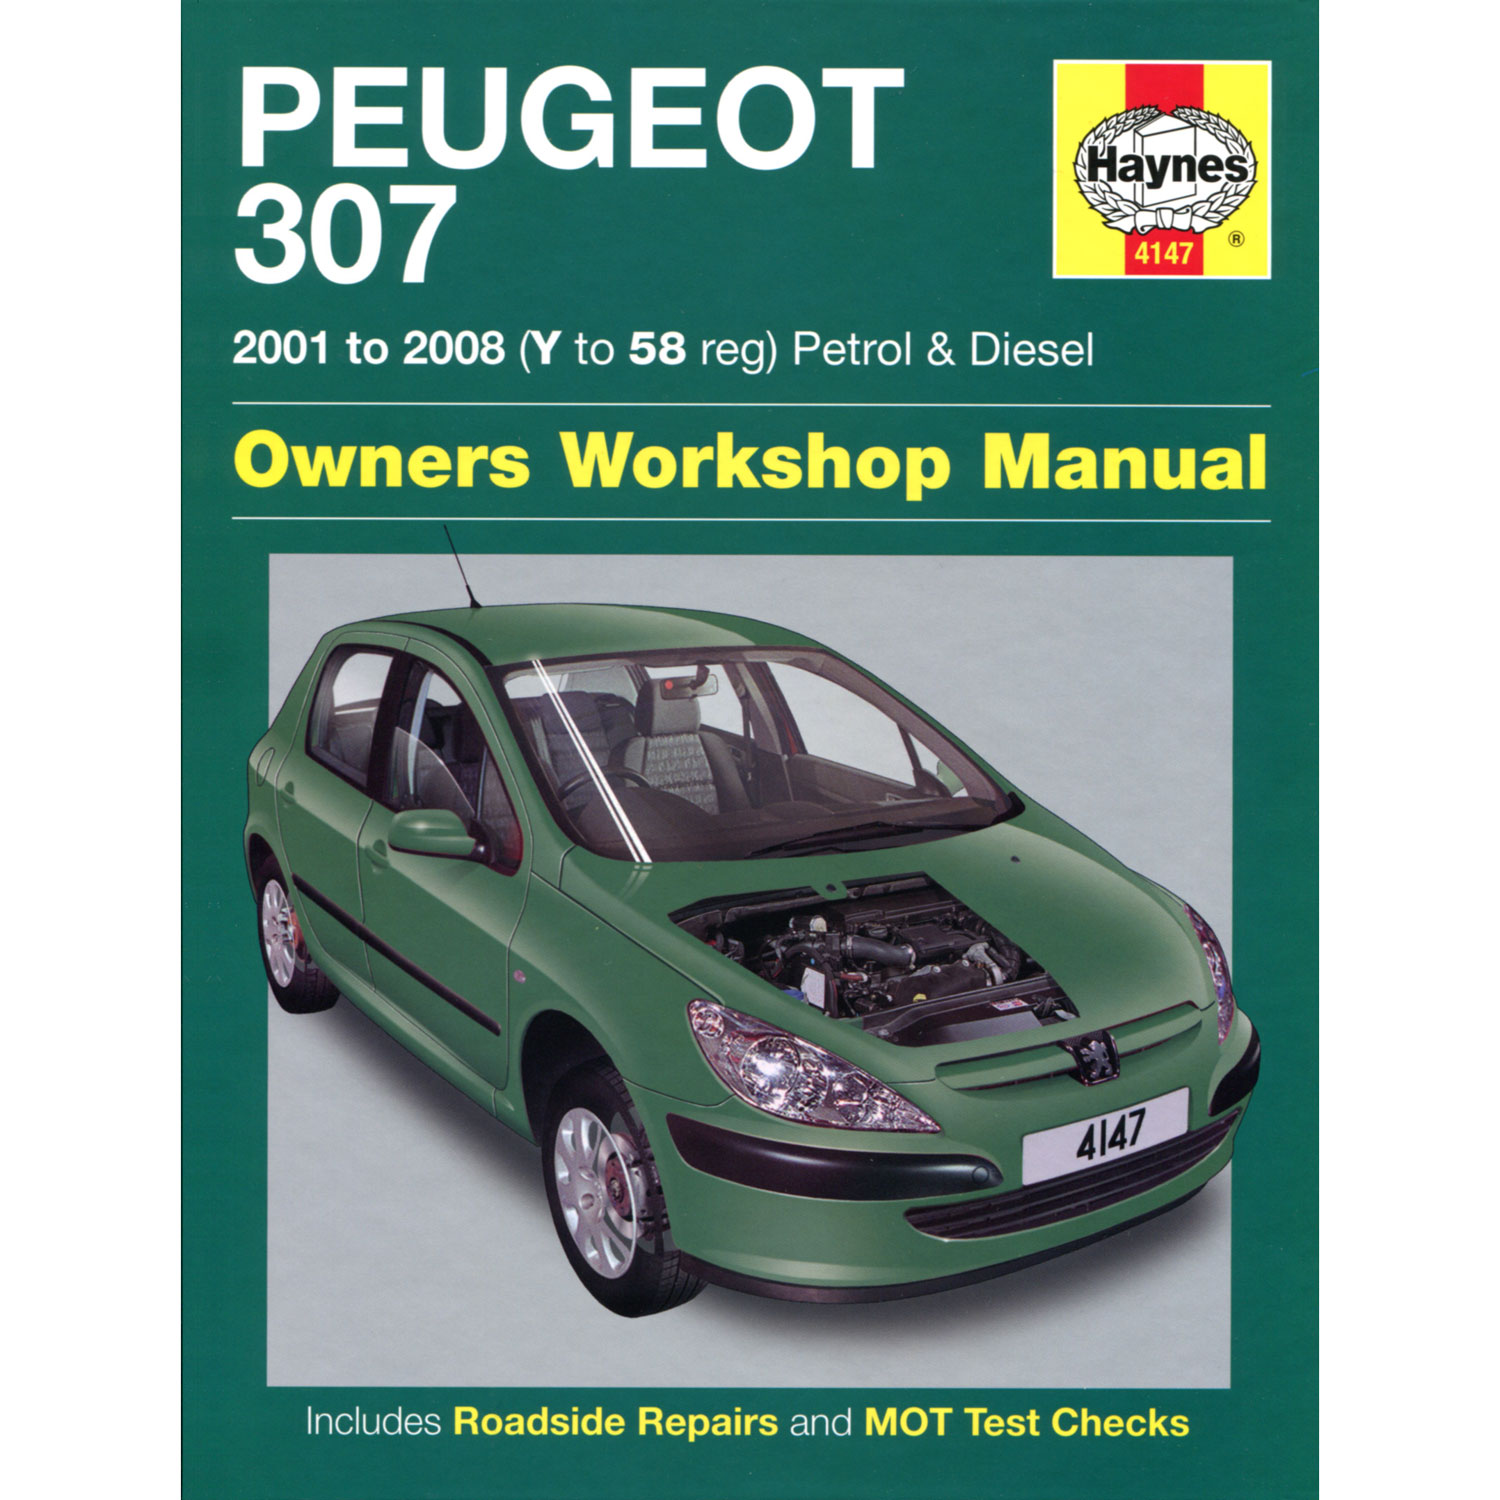 new haynes manual peugeot 307 01 08 car workshop repair. Black Bedroom Furniture Sets. Home Design Ideas